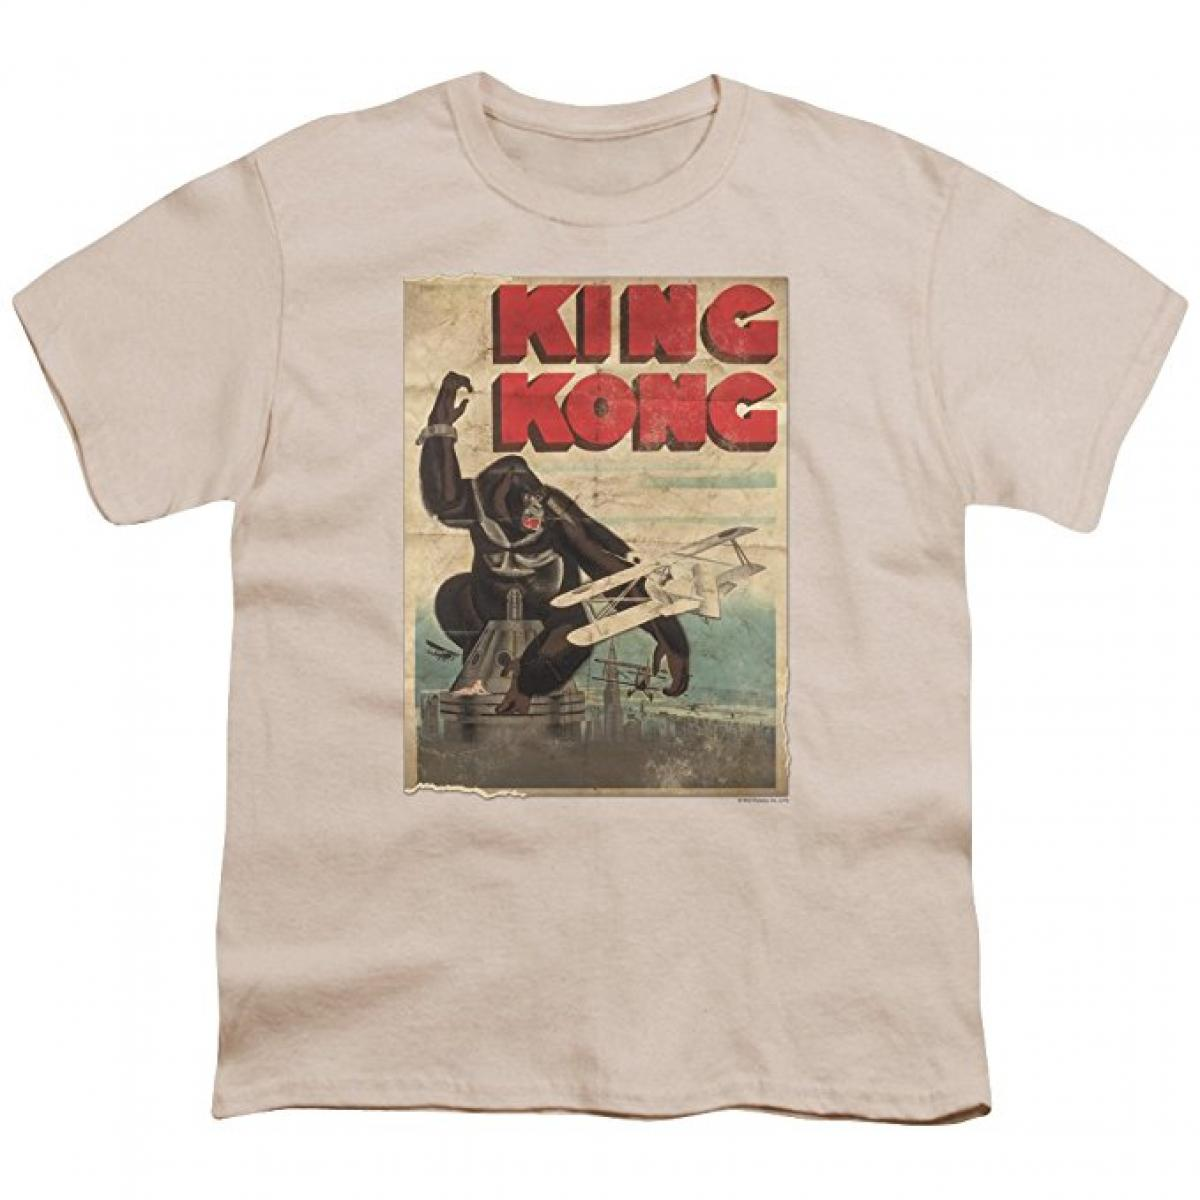 King Kong Poster Shirt